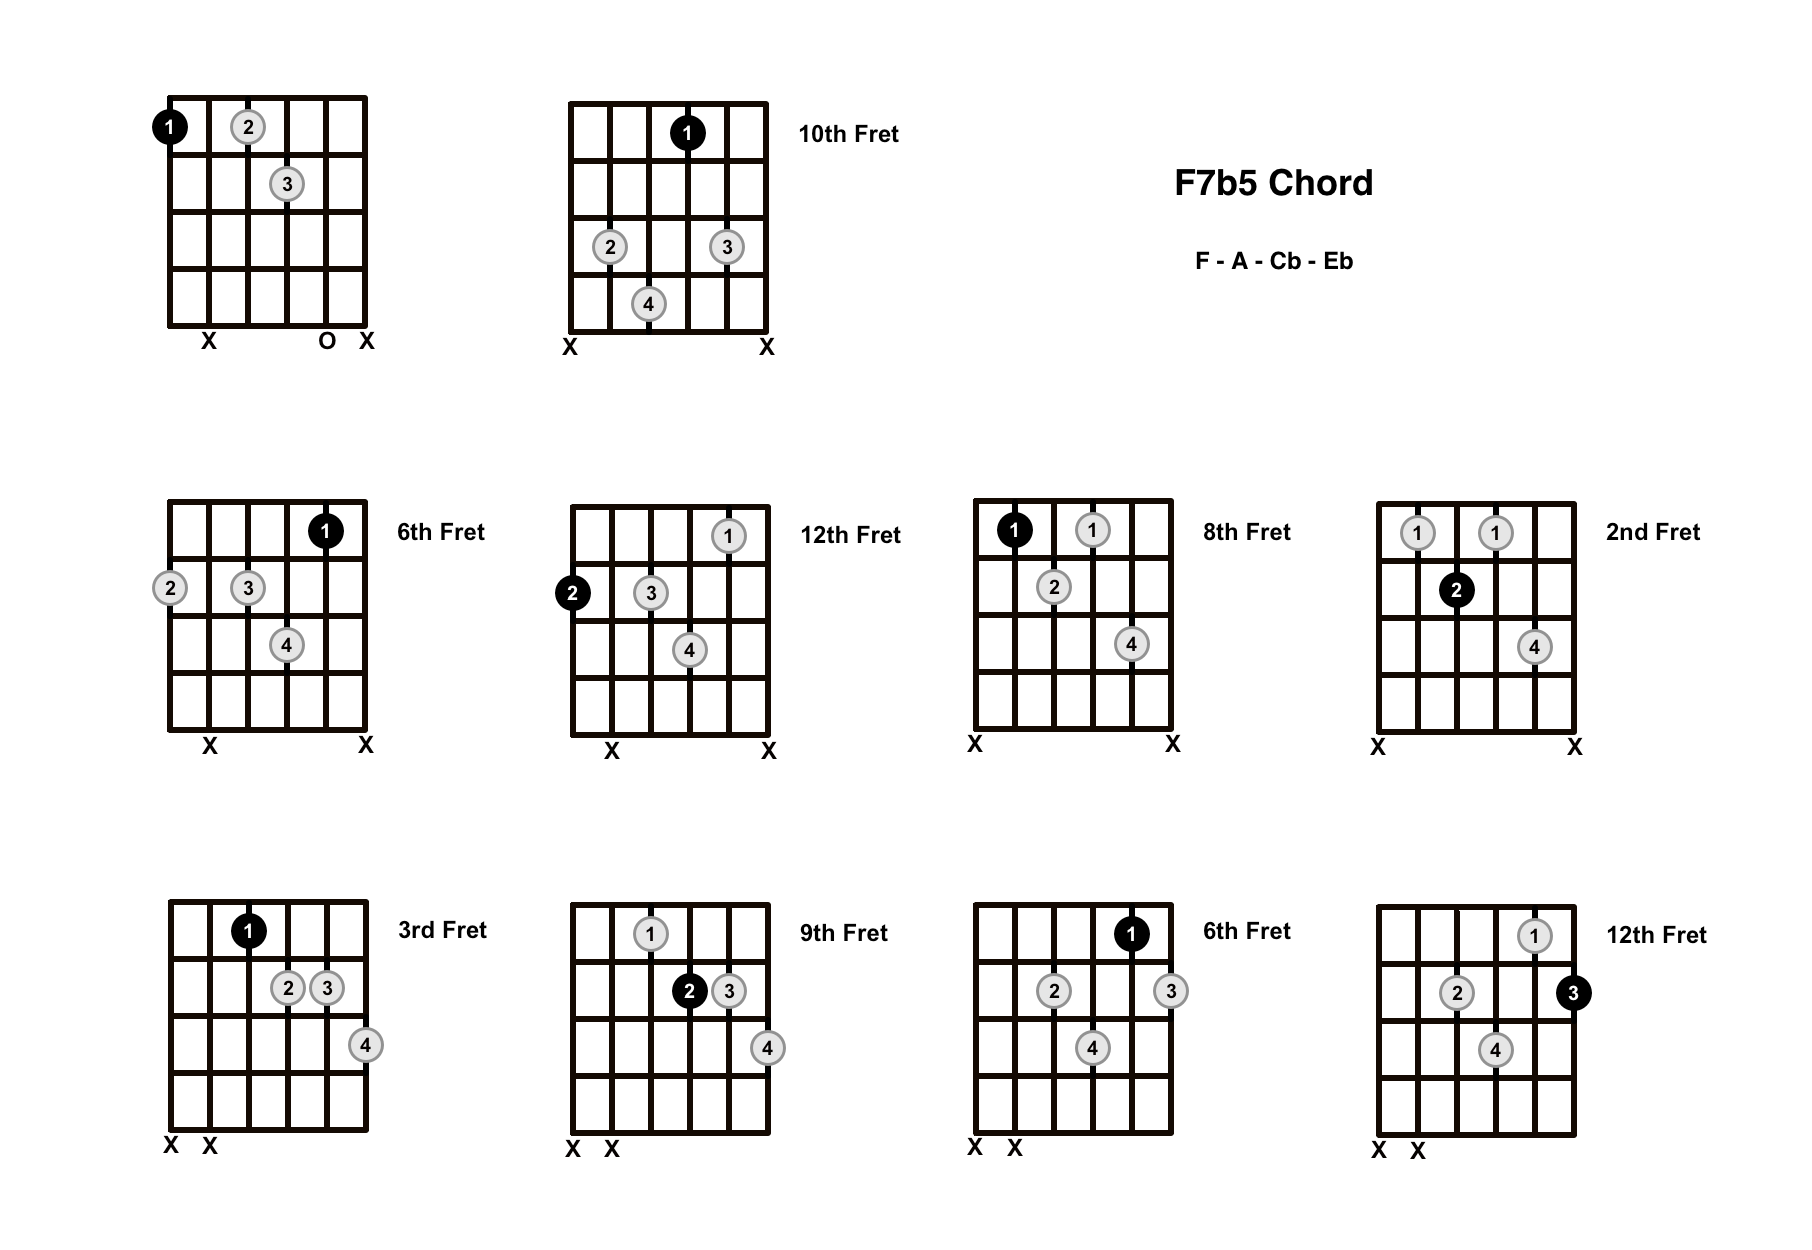 F7b5 Chord On The Guitar (F Dominant 7 Flat 5) – Diagrams, Finger Positions and Theory